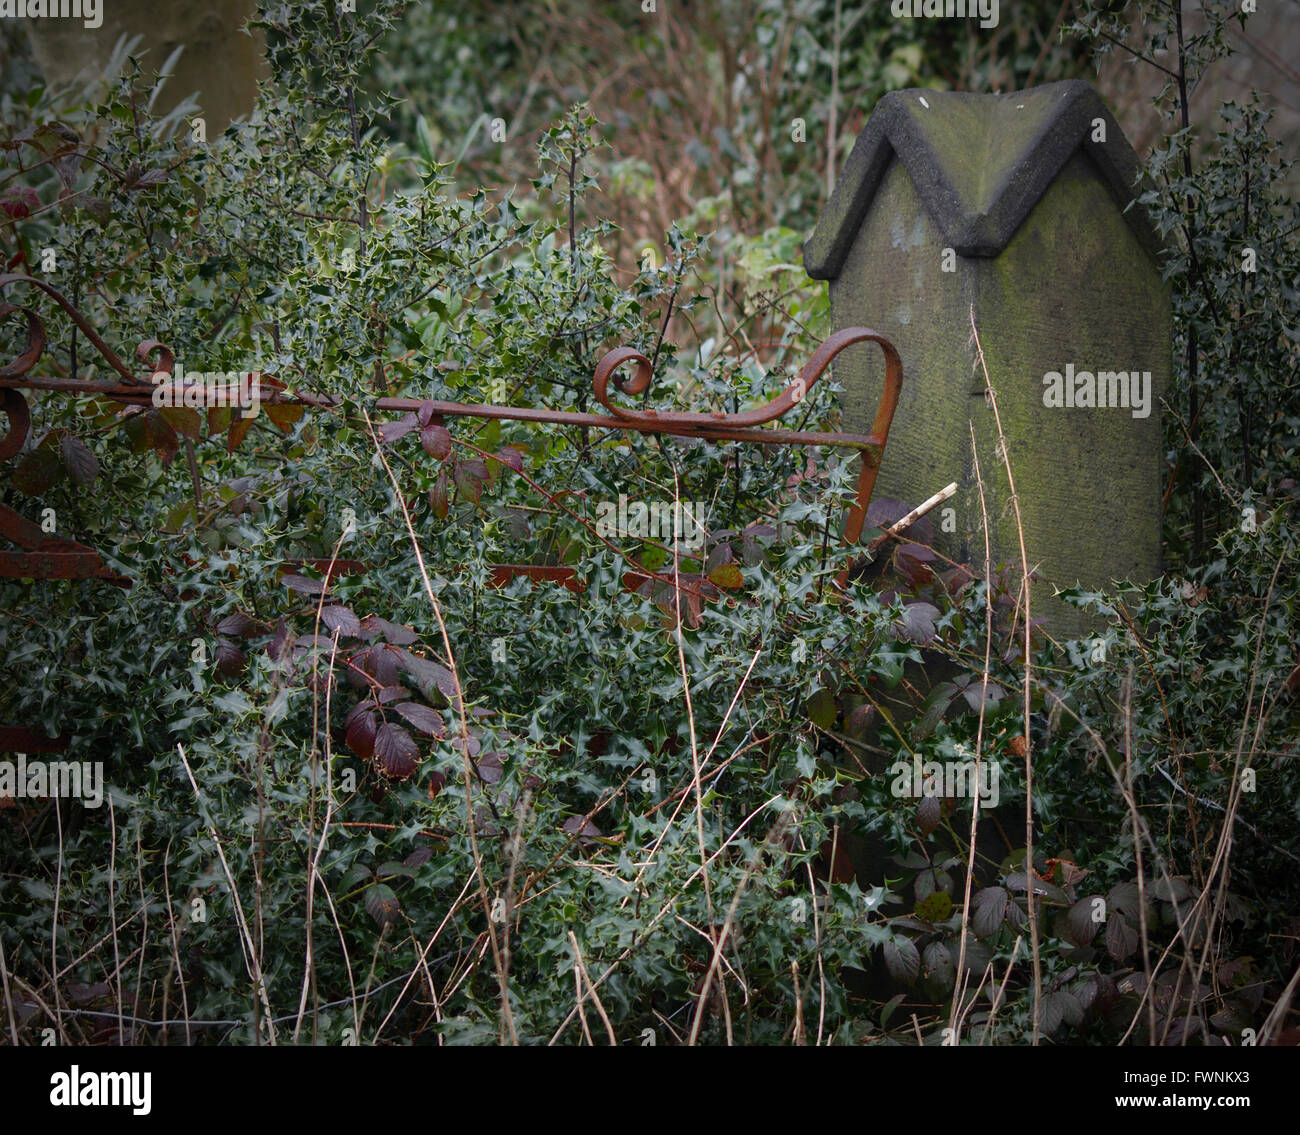 A rusty iron gate is slowly submerged in undergrowth. Stock Photo